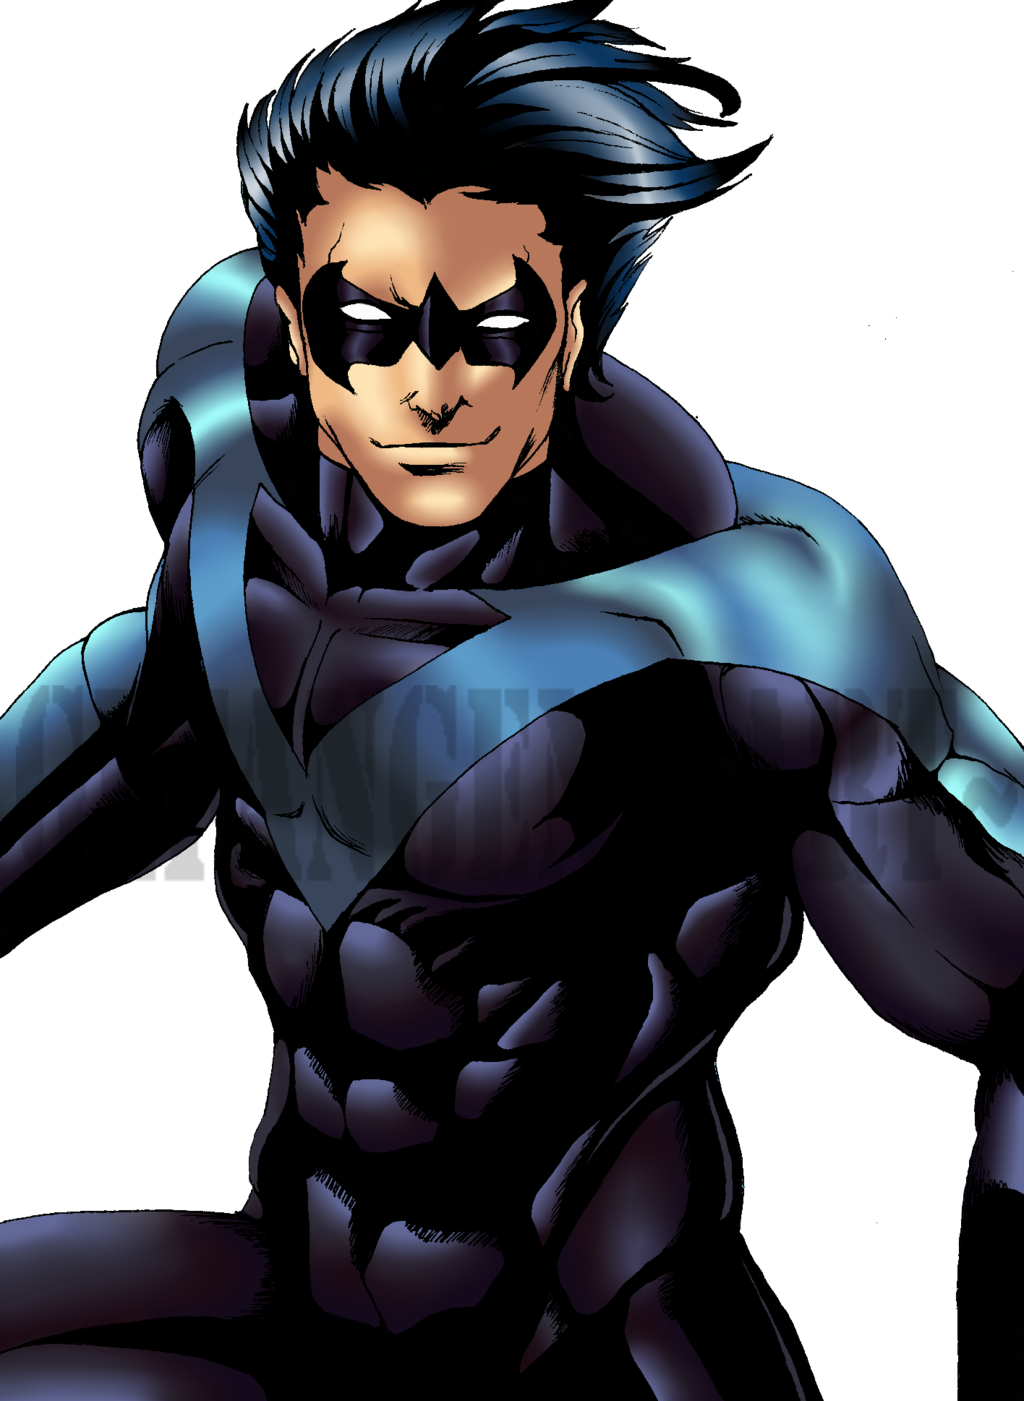 Png nightwing. Transparent background mart